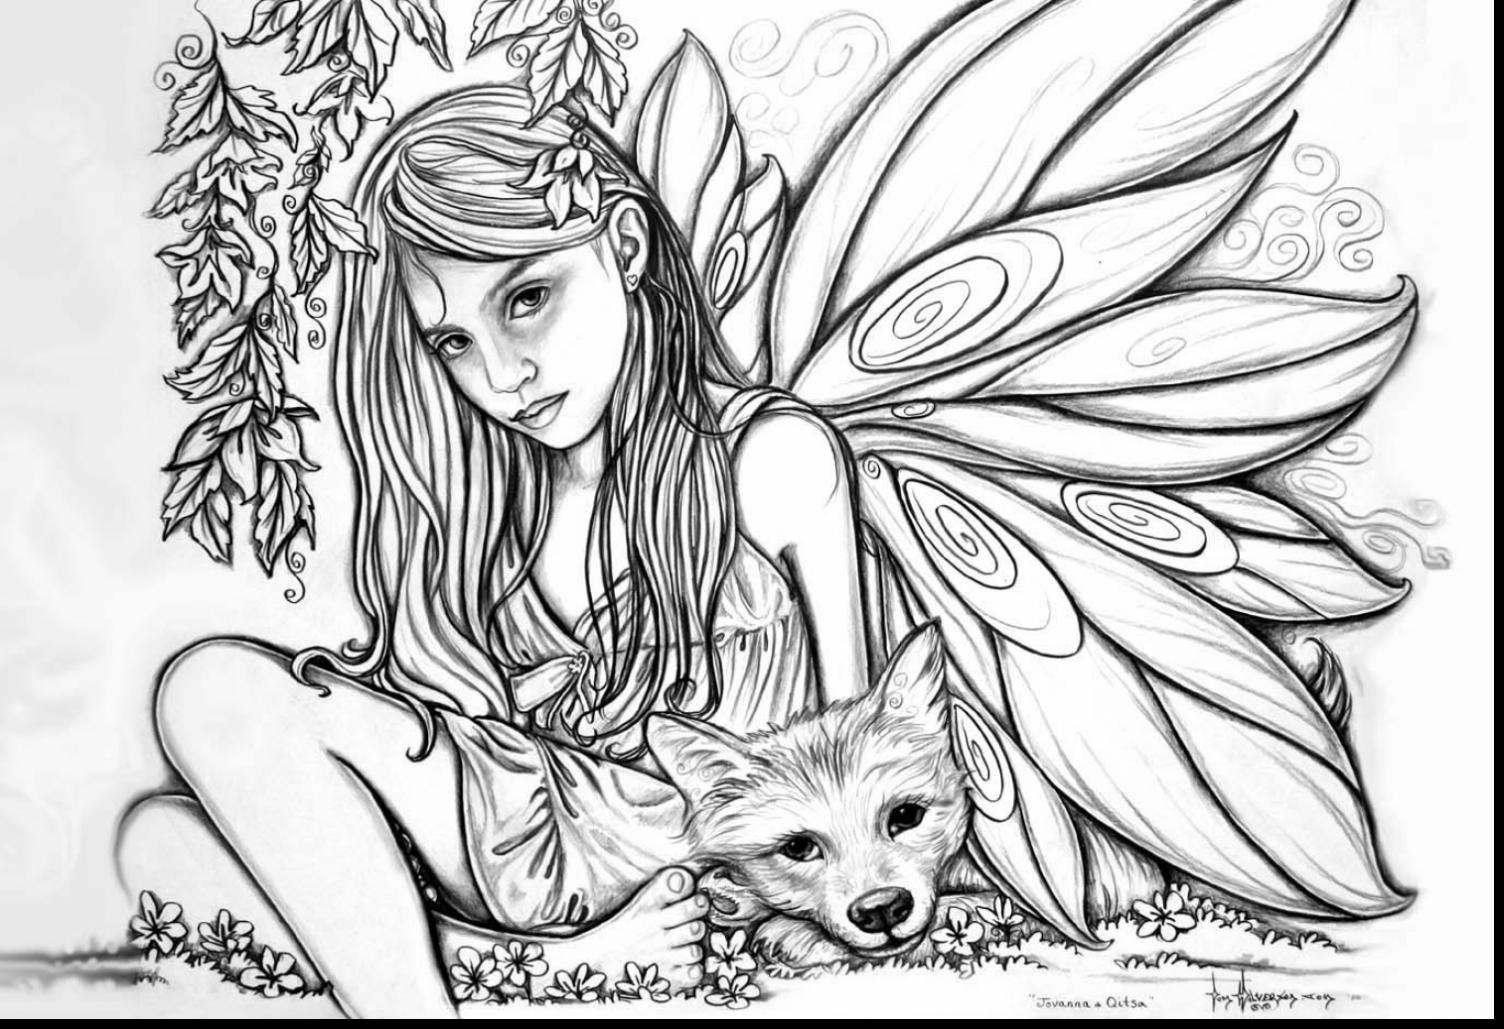 Free Gothic Fairy Coloring Pages Luxury Printable Colouring Pages - Free Printable Coloring Pages For Adults Dark Fairies